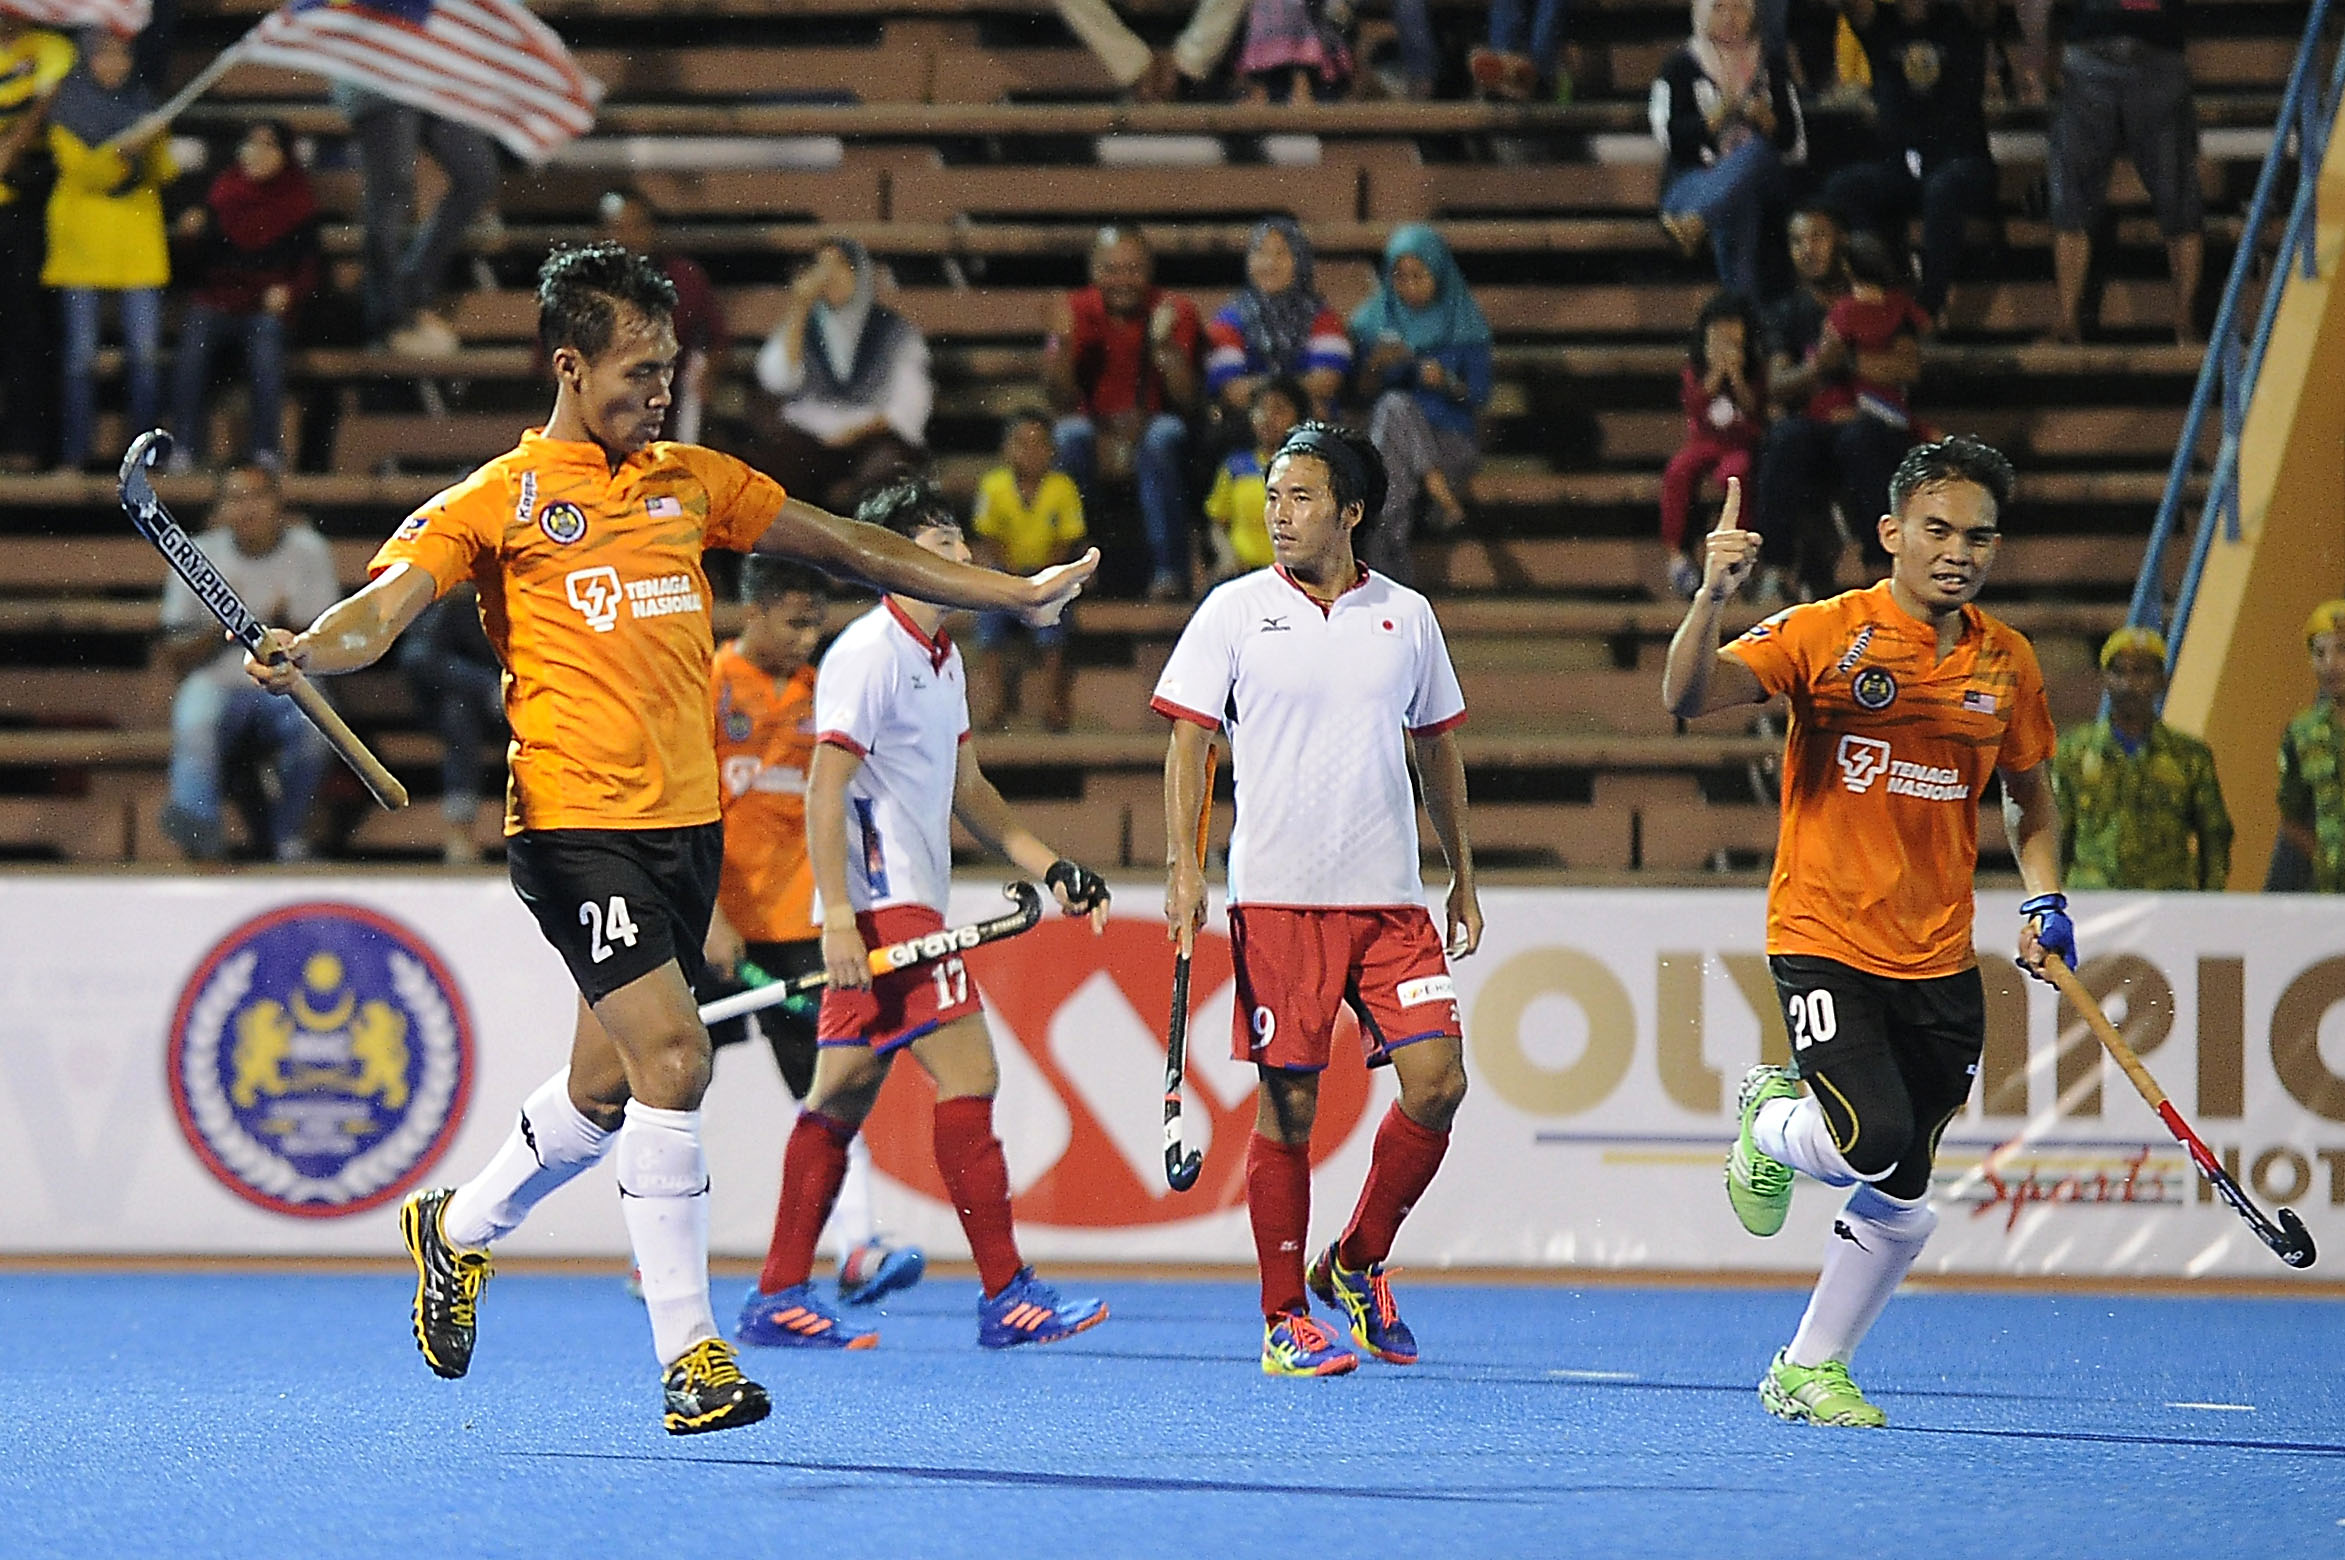 Malaysia's Aiman Nik Rosemi (left) celebrates after scoring against Japan during their QNET 4th Men's Asian Champions Trophy 2016 match at the Wisma Belia Hockey Stadium, Kuantan today. Malaysia won 7-2.